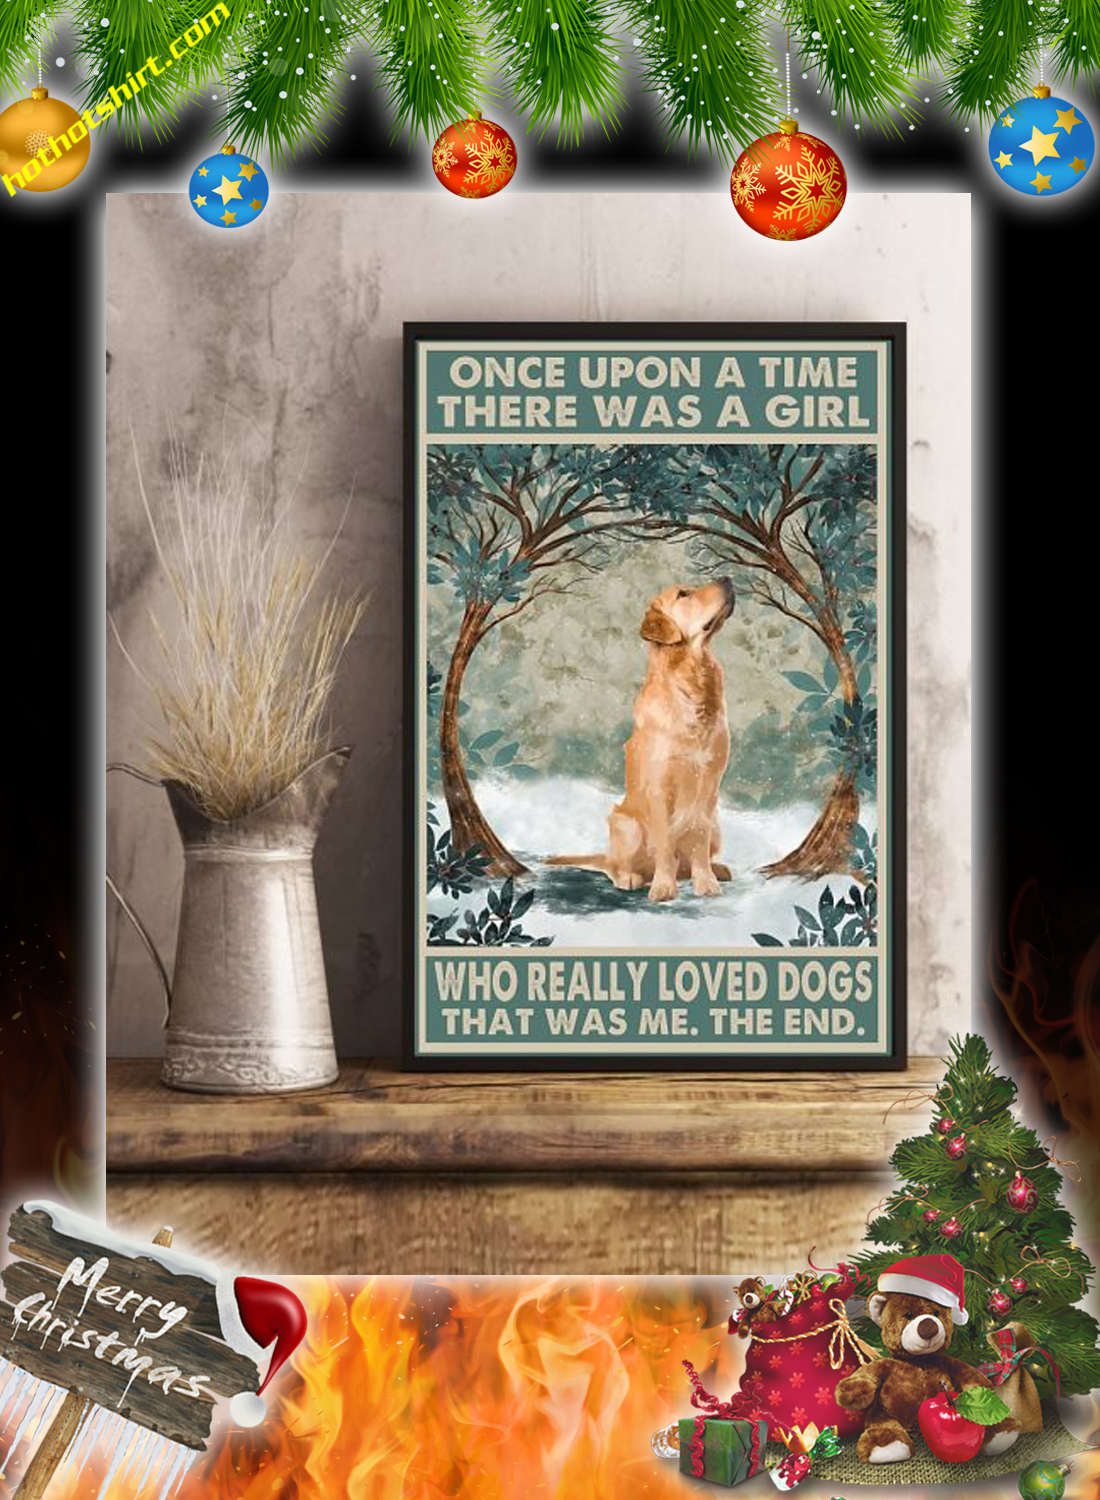 Golden retriever Once upon a time there was a girl who really loved dogs poster 3